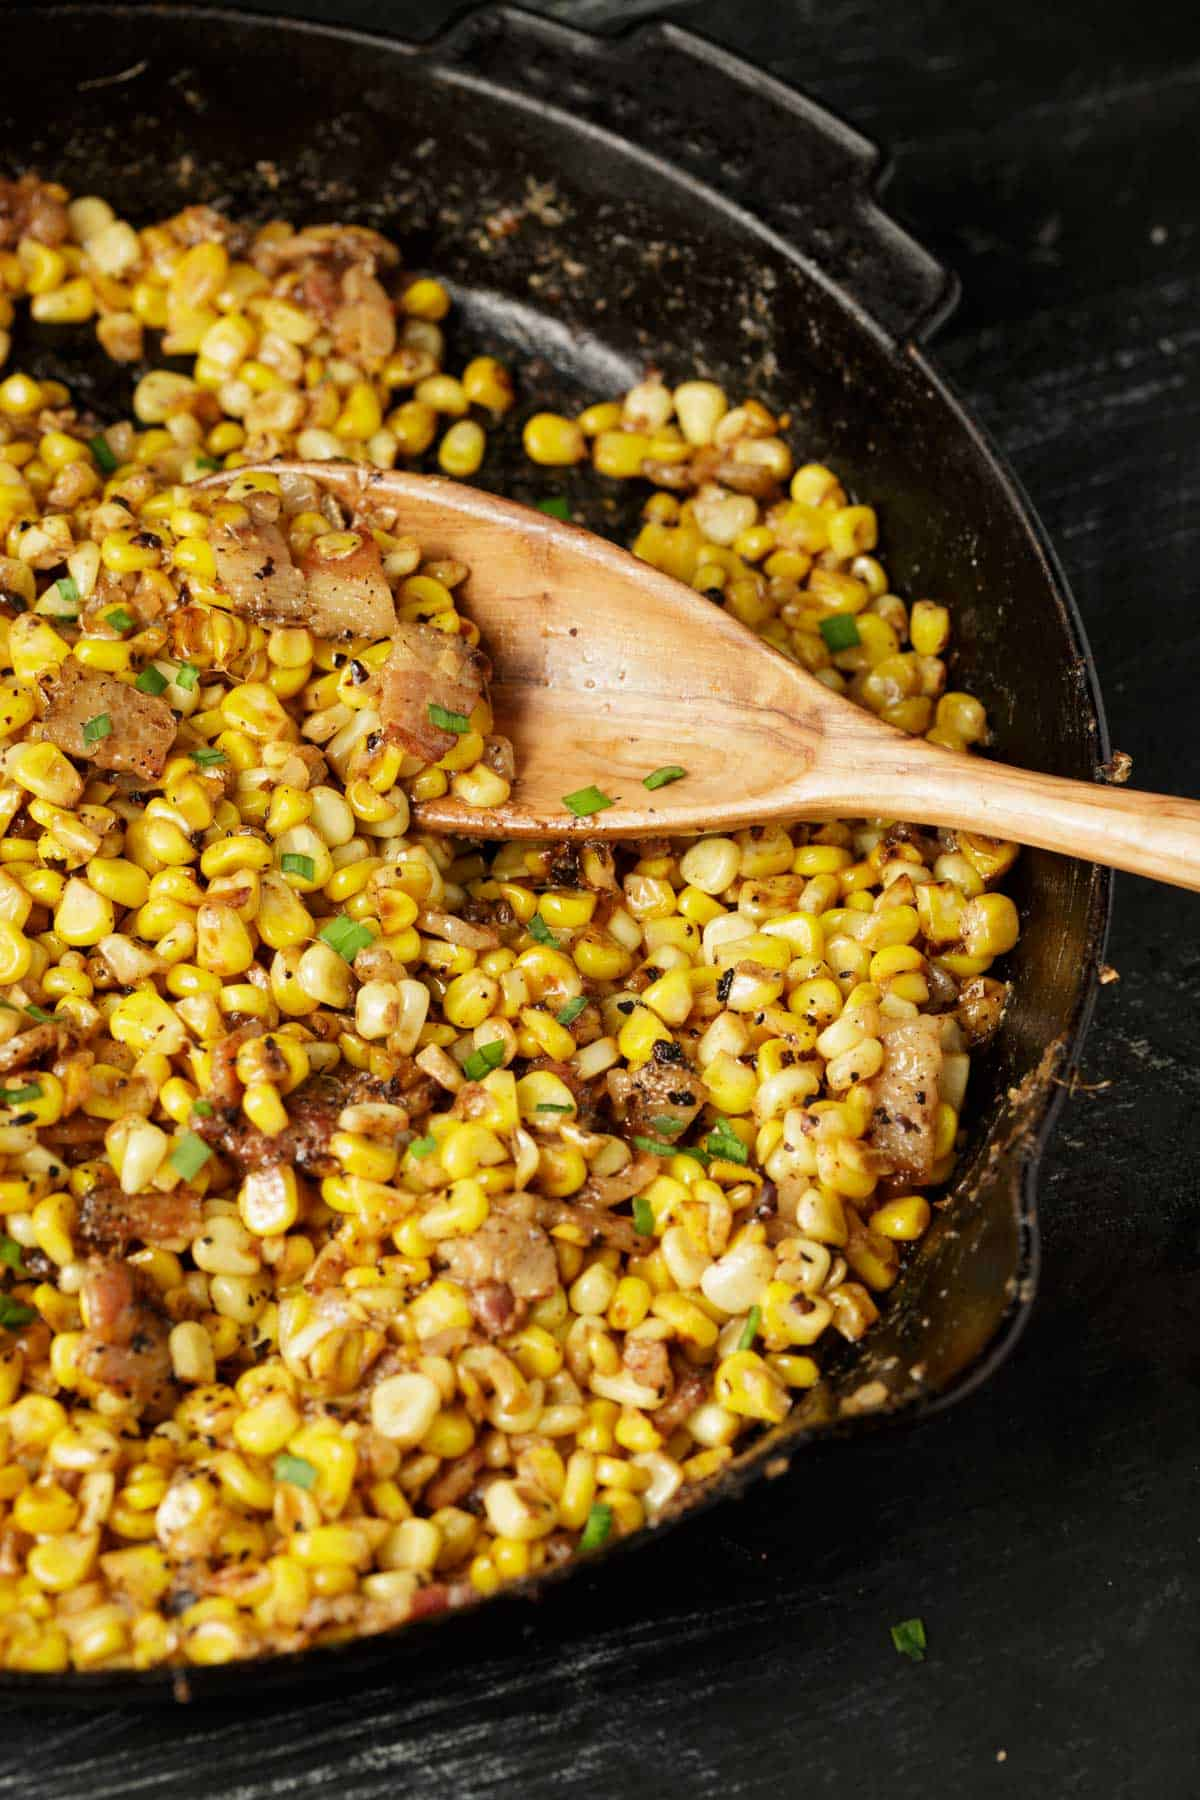 A skillet of corn and bacon.